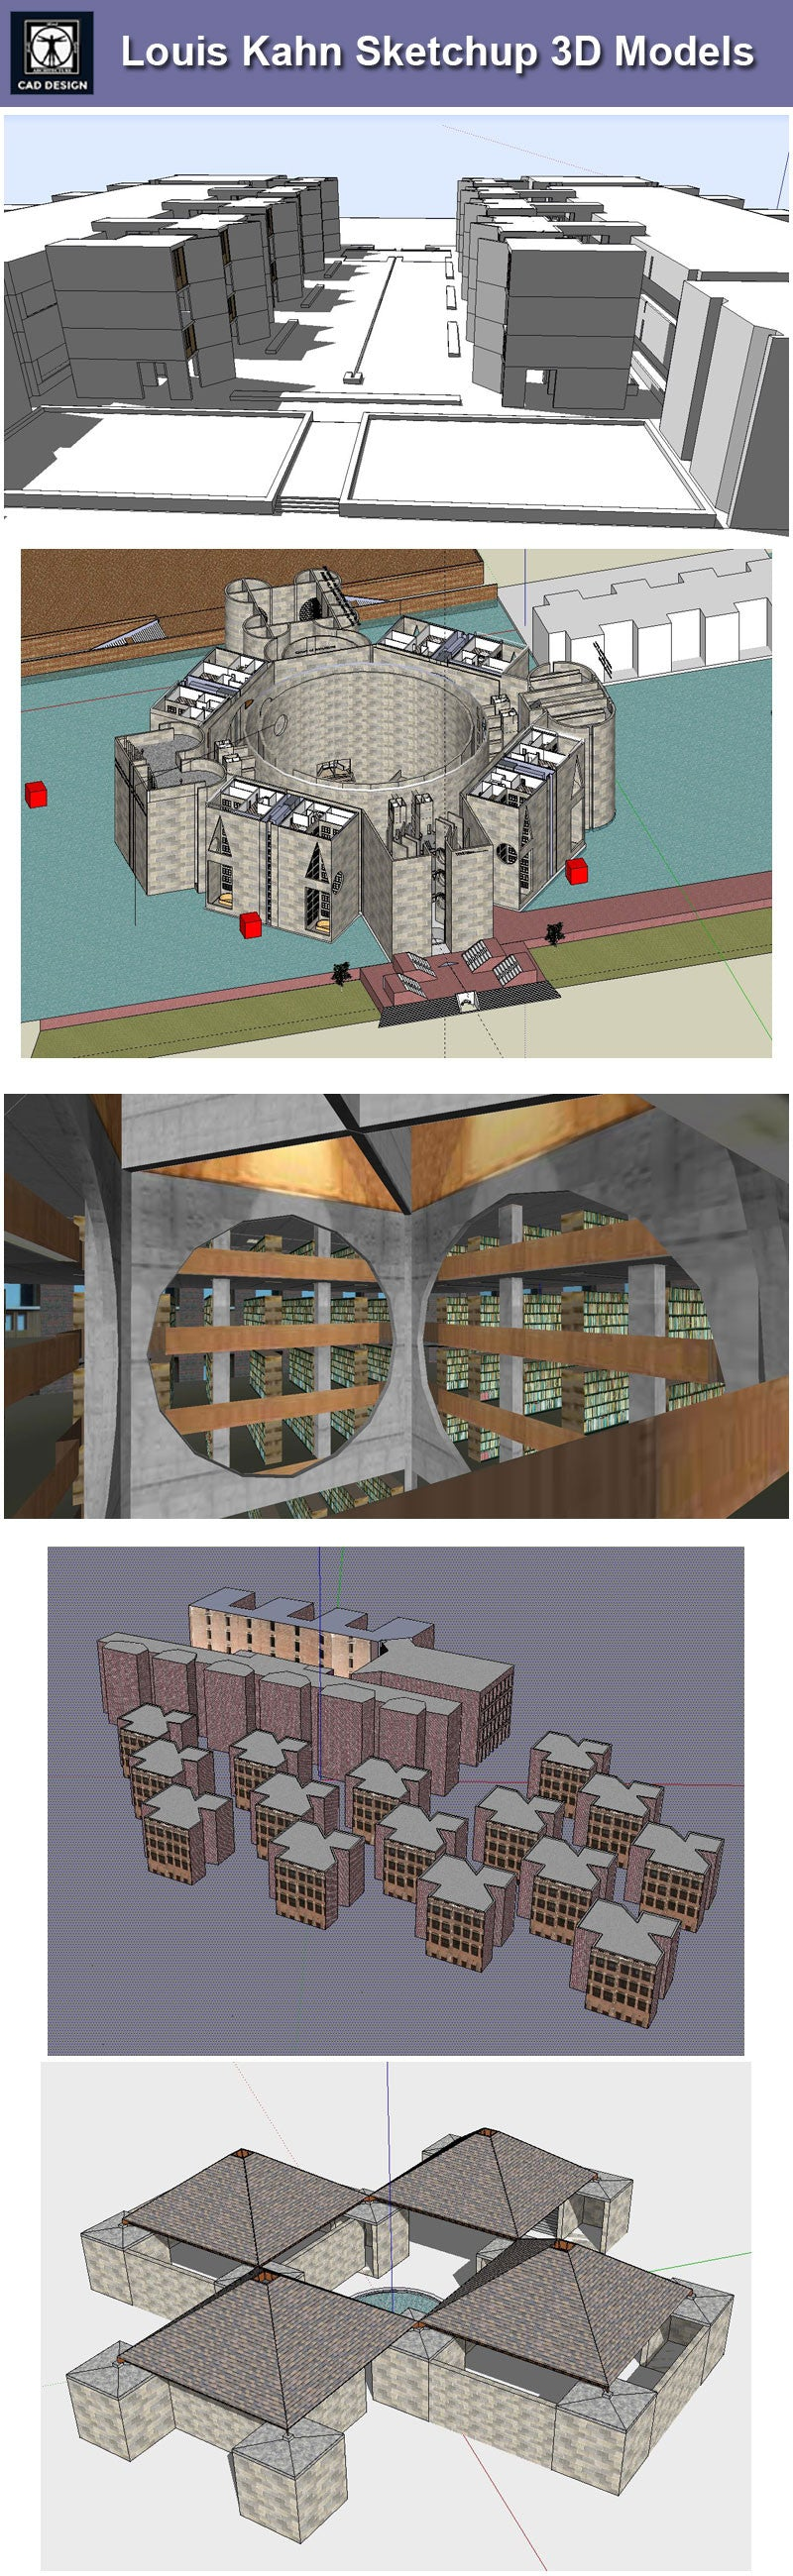 Download 7 Projects of Louis Kahn Architecture Sketchup 3D Models